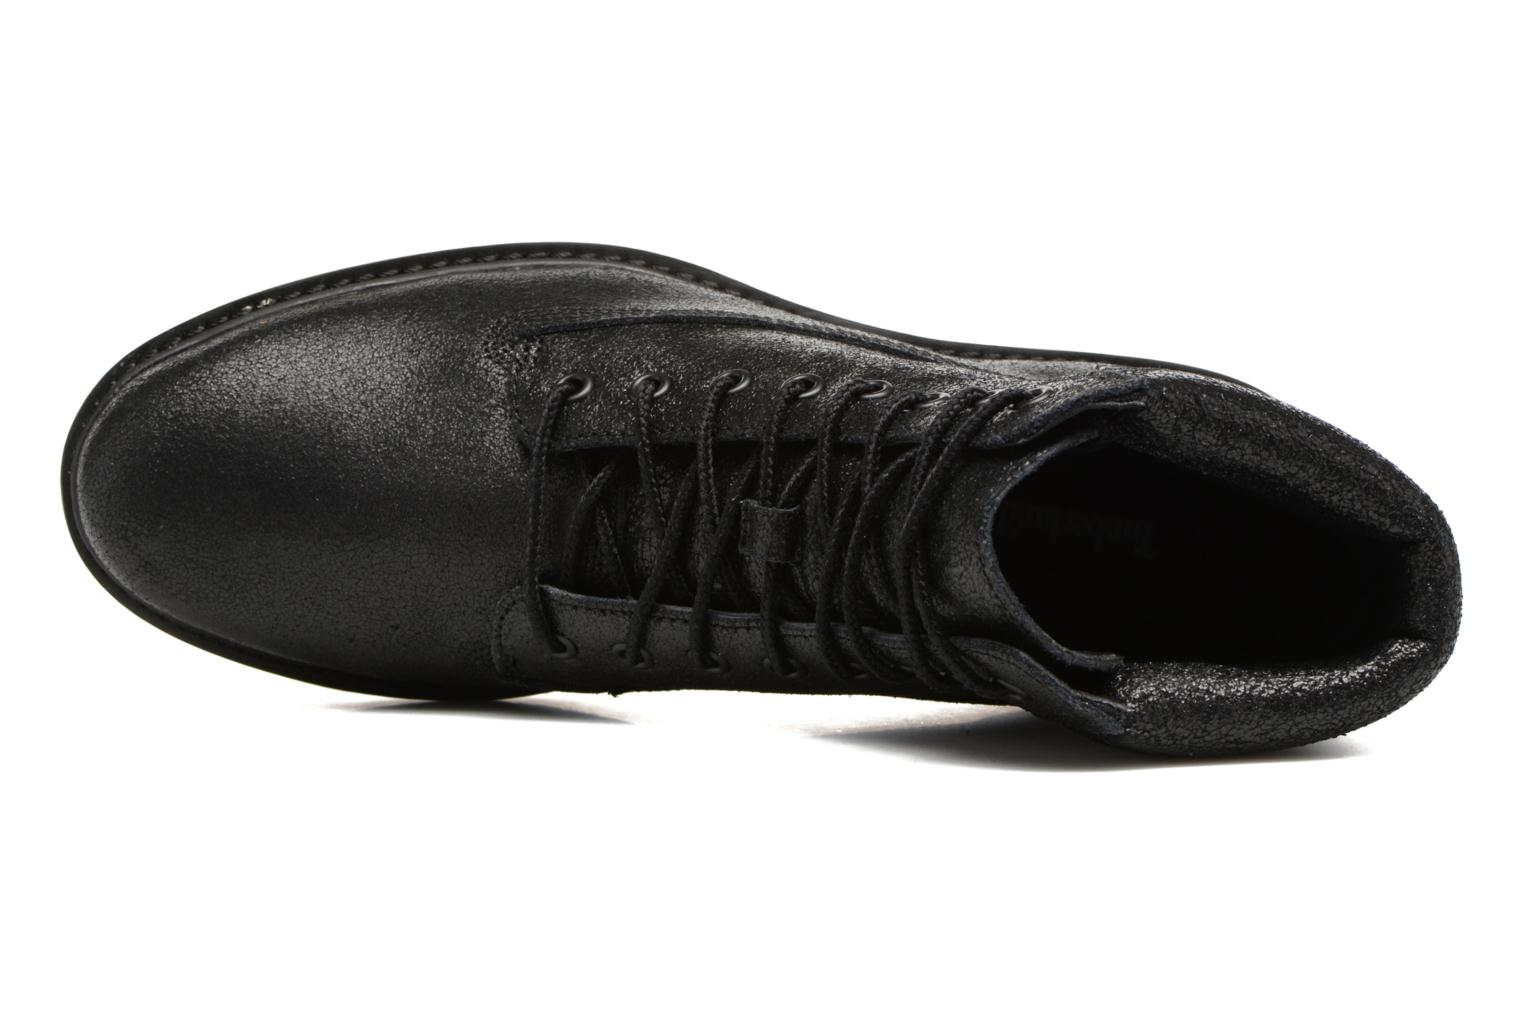 Kenniston 6in Lace Up Black Charred Suede